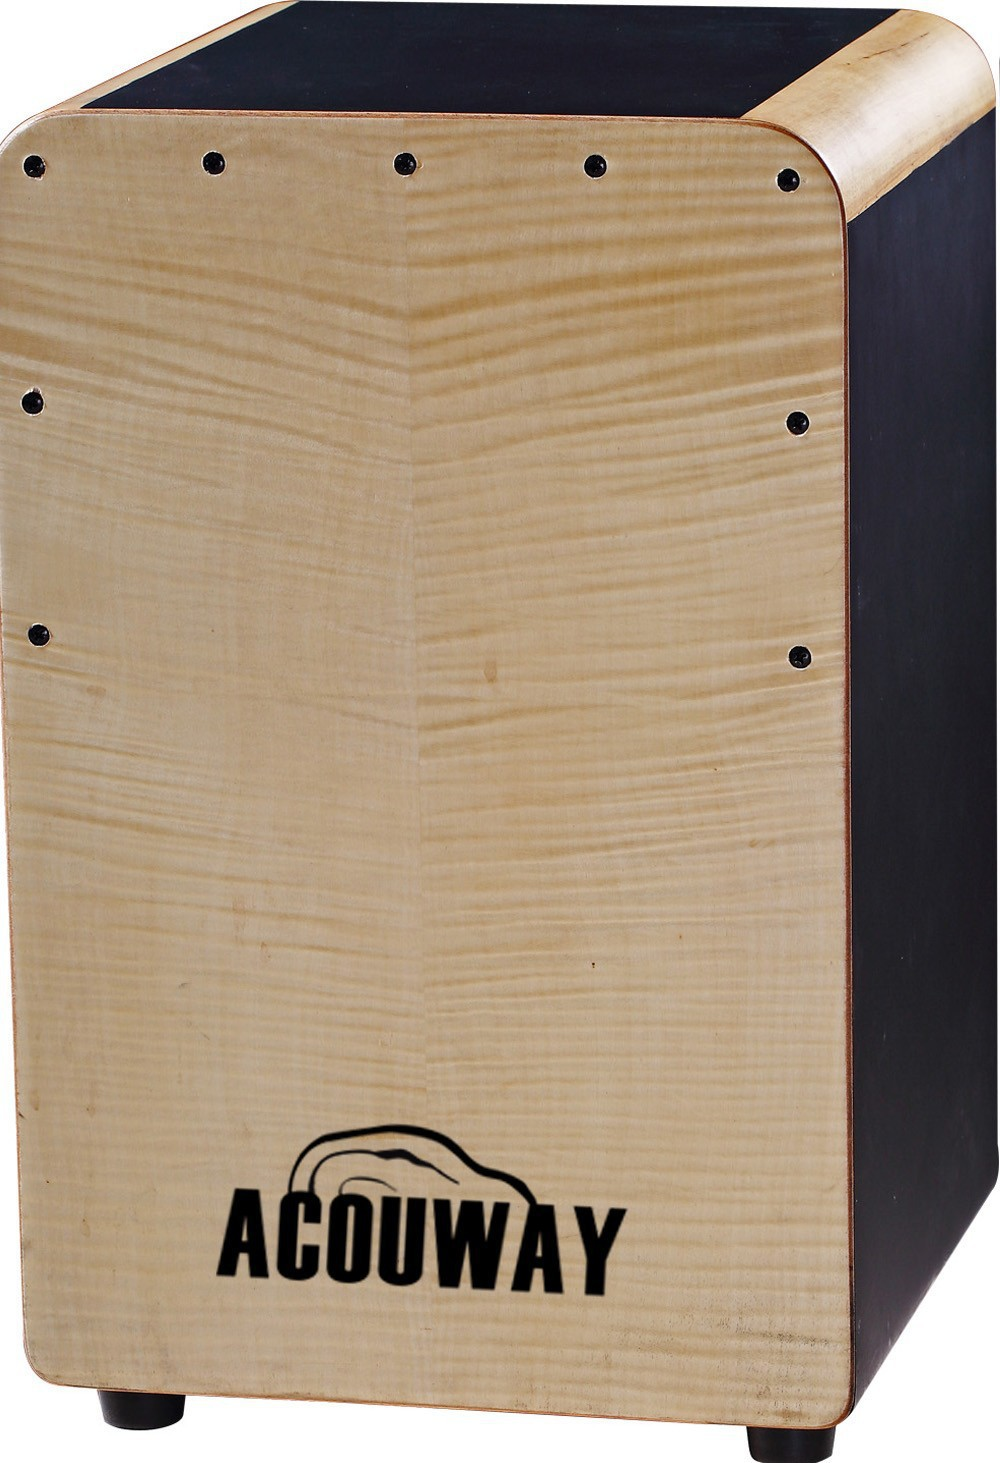 ACOUWAY popular acoustic percussion flamenco cajon drum box good sitting wooden Stool chair box furniture at living room-in Drum from Sports u0026 Entertainment ... & ACOUWAY popular acoustic percussion flamenco cajon drum box good ... Aboutintivar.Com